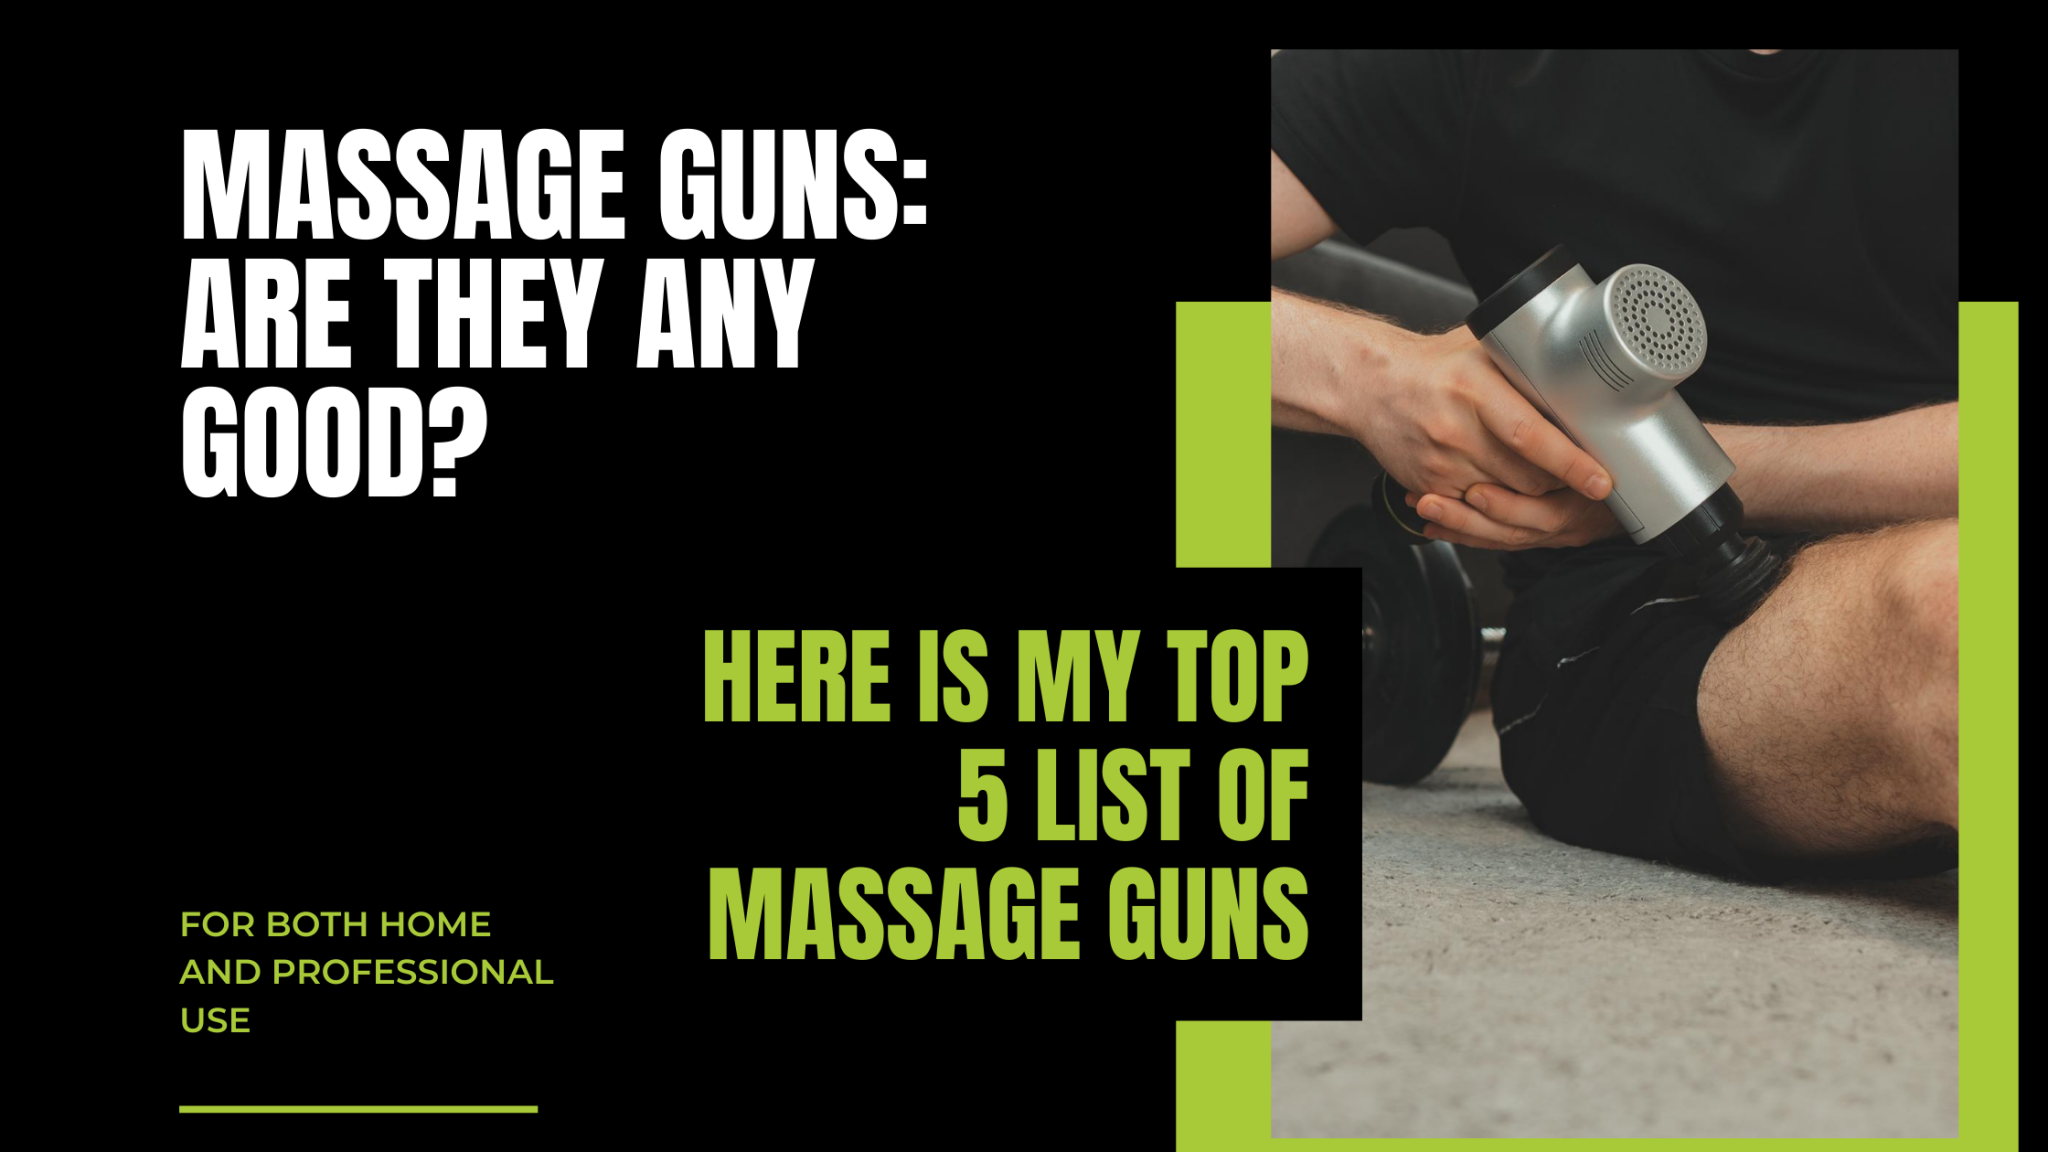 Massage guns: Are they any good?